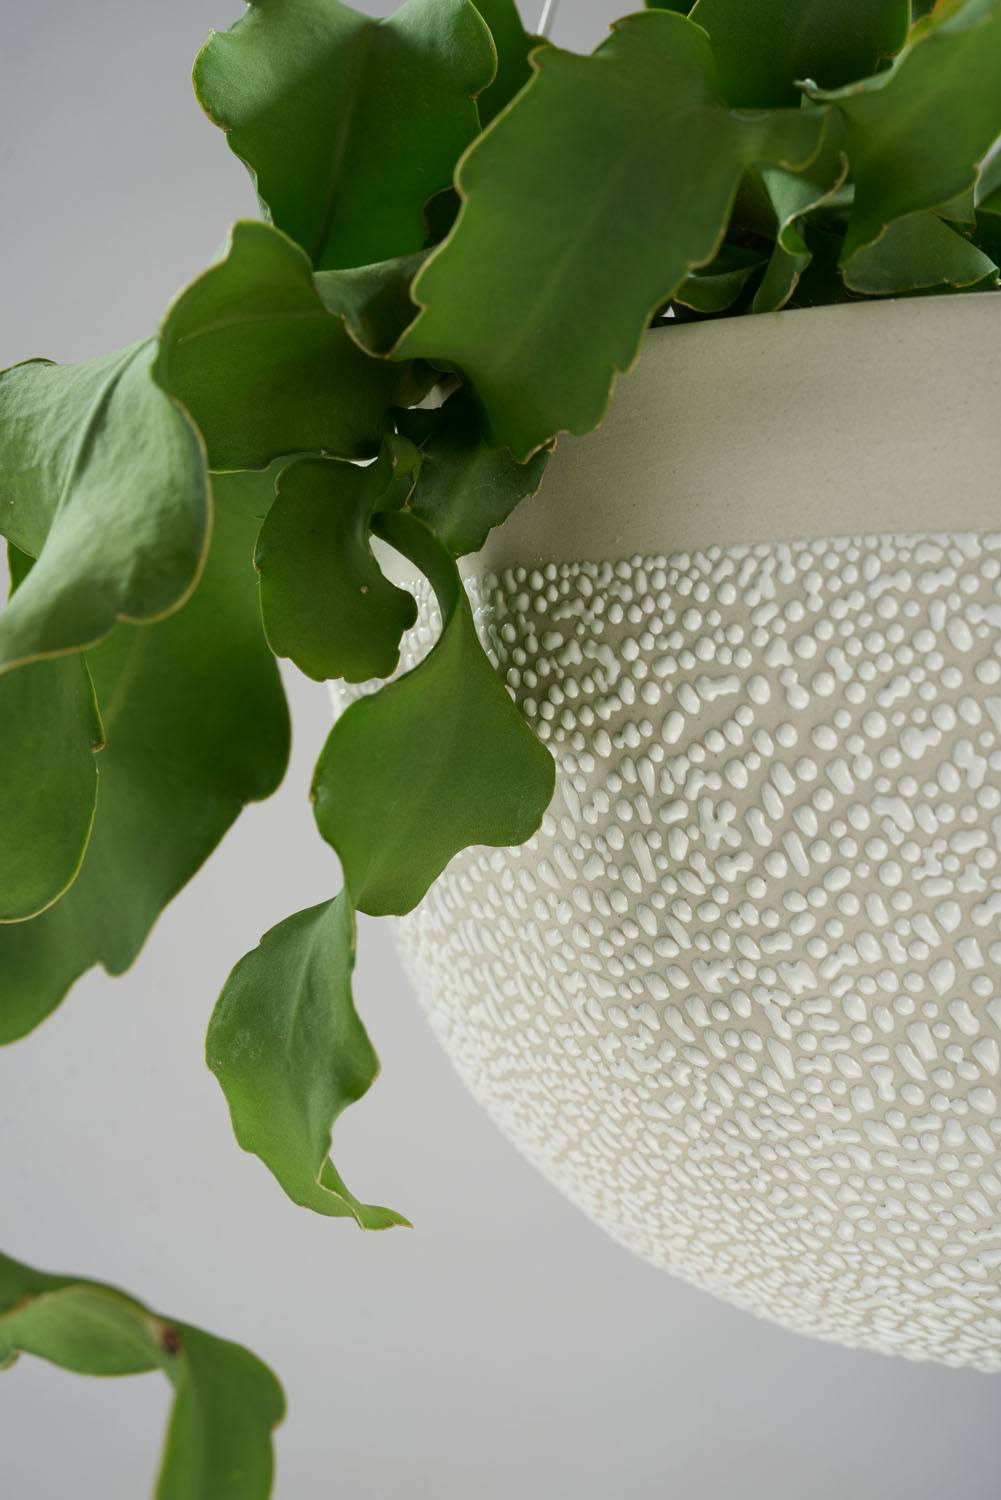 Angus & Celeste White Water Bead Hanging Planters Detail Styled